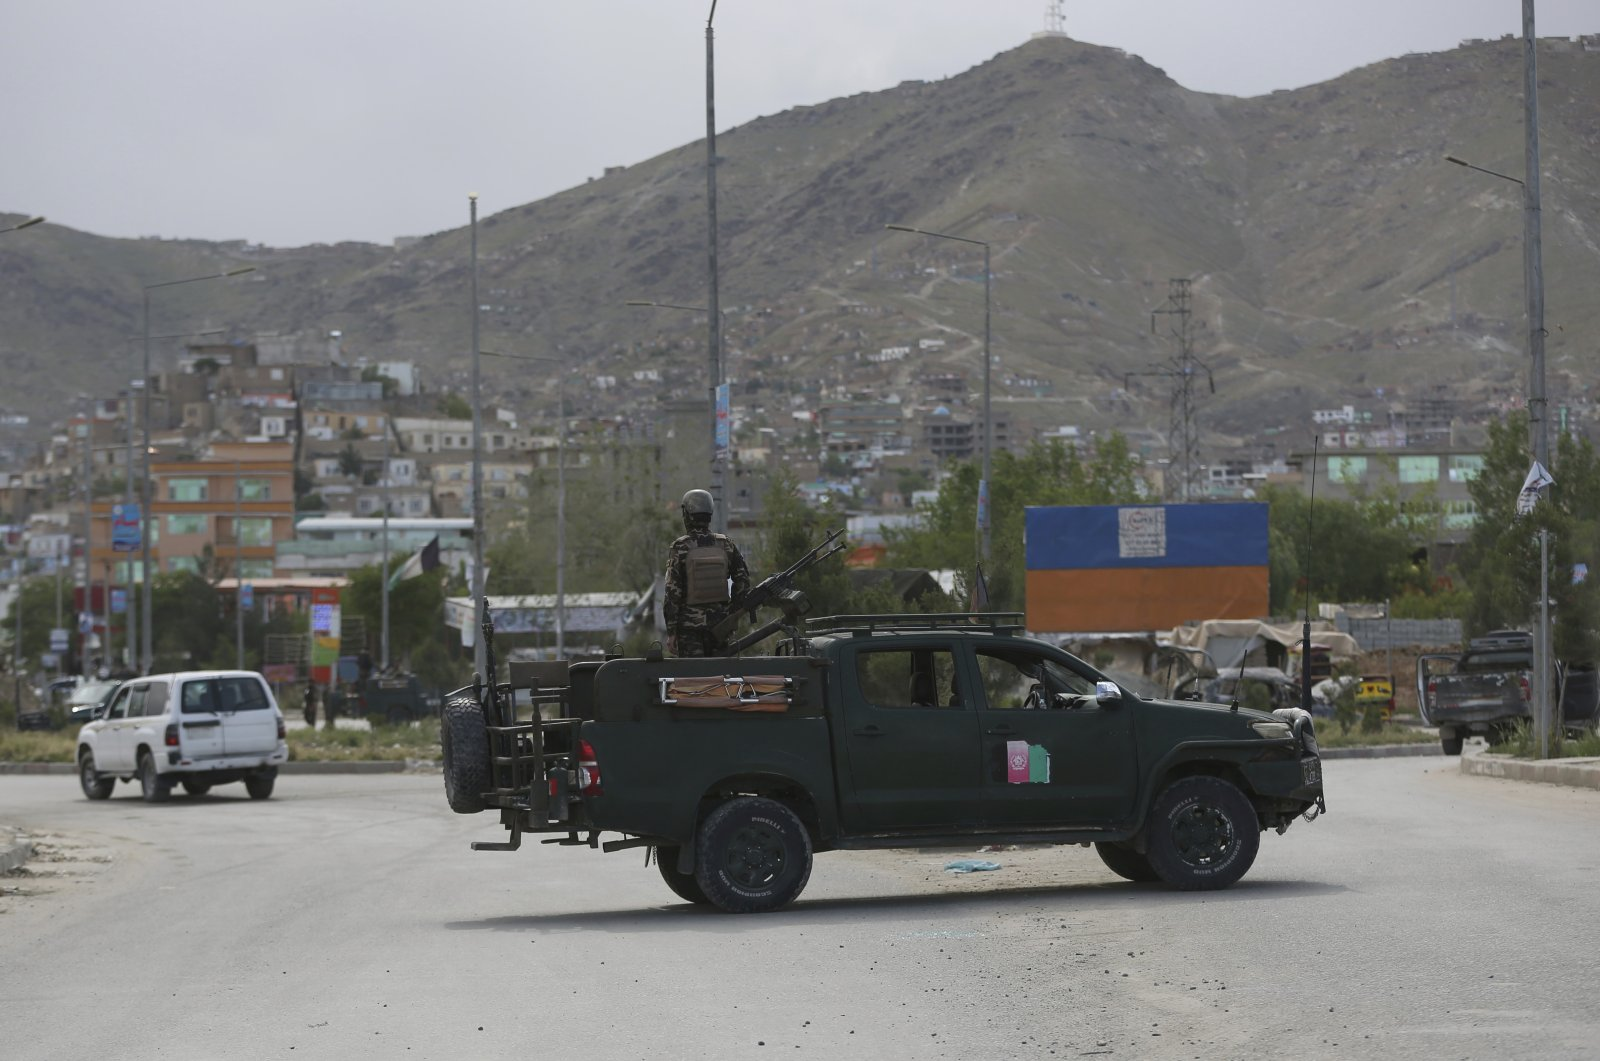 Afghan security forces inspect the site of a bomb explosion in Kabul, Afghanistan, Monday, May 18, 2020. (AP Photo)